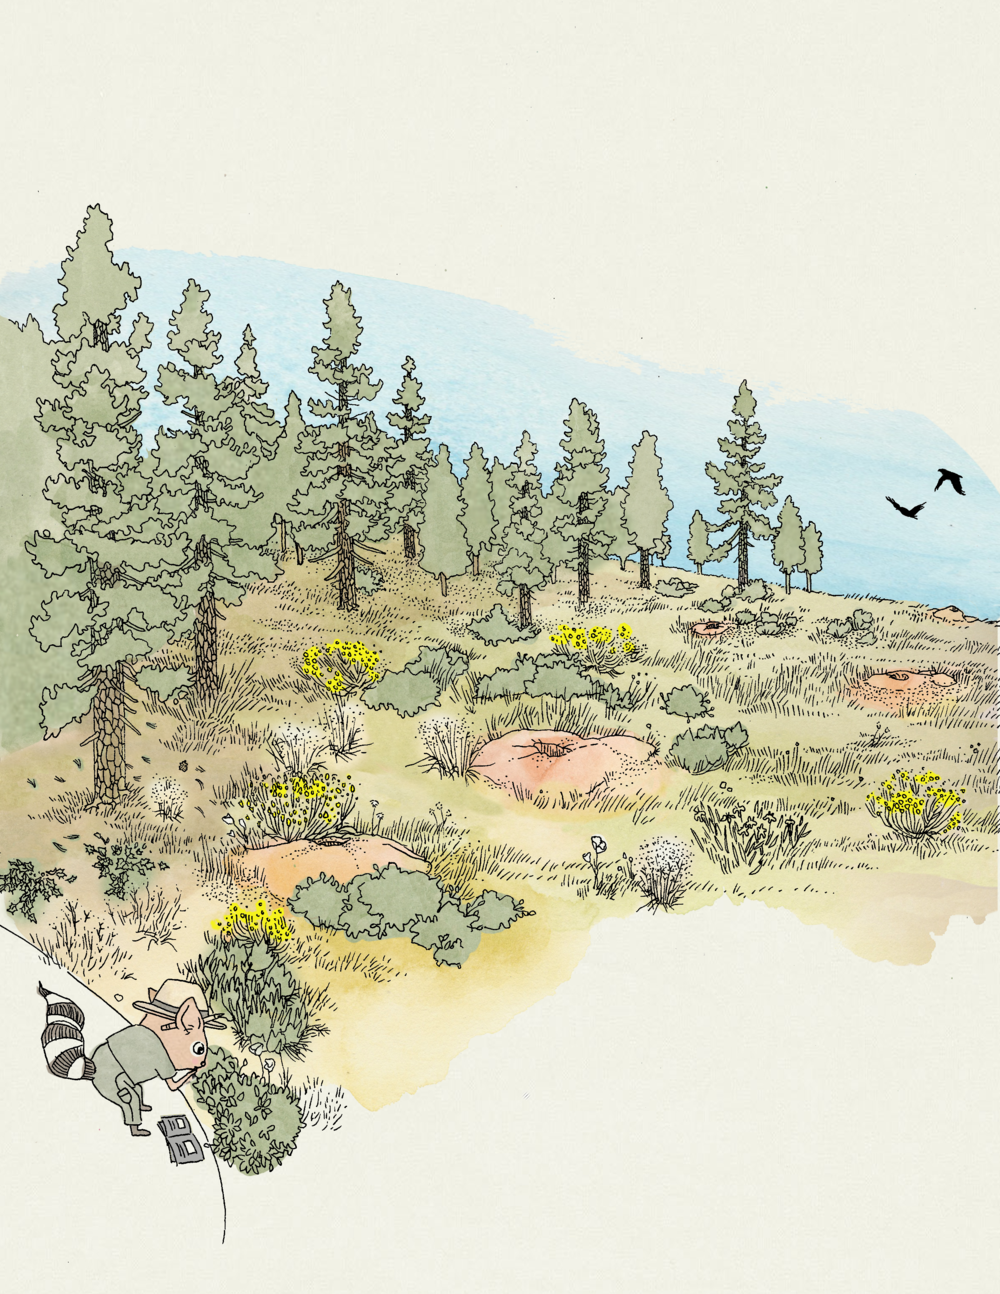 Being in the Park, 2 - Randi Ringtail identifies plants of Bryce Canyon National Park.